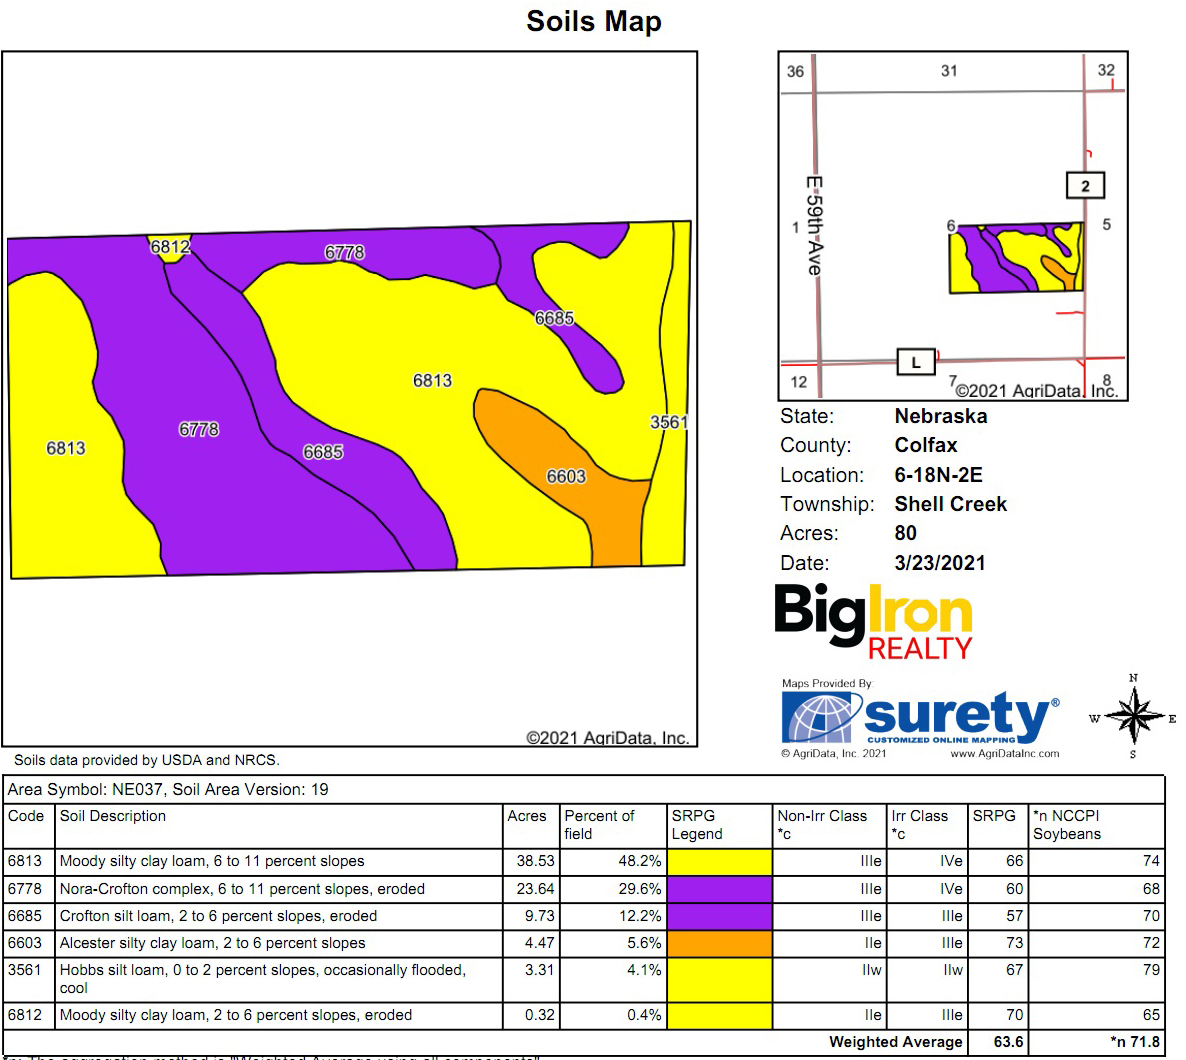 Soils Map_BIR-2112